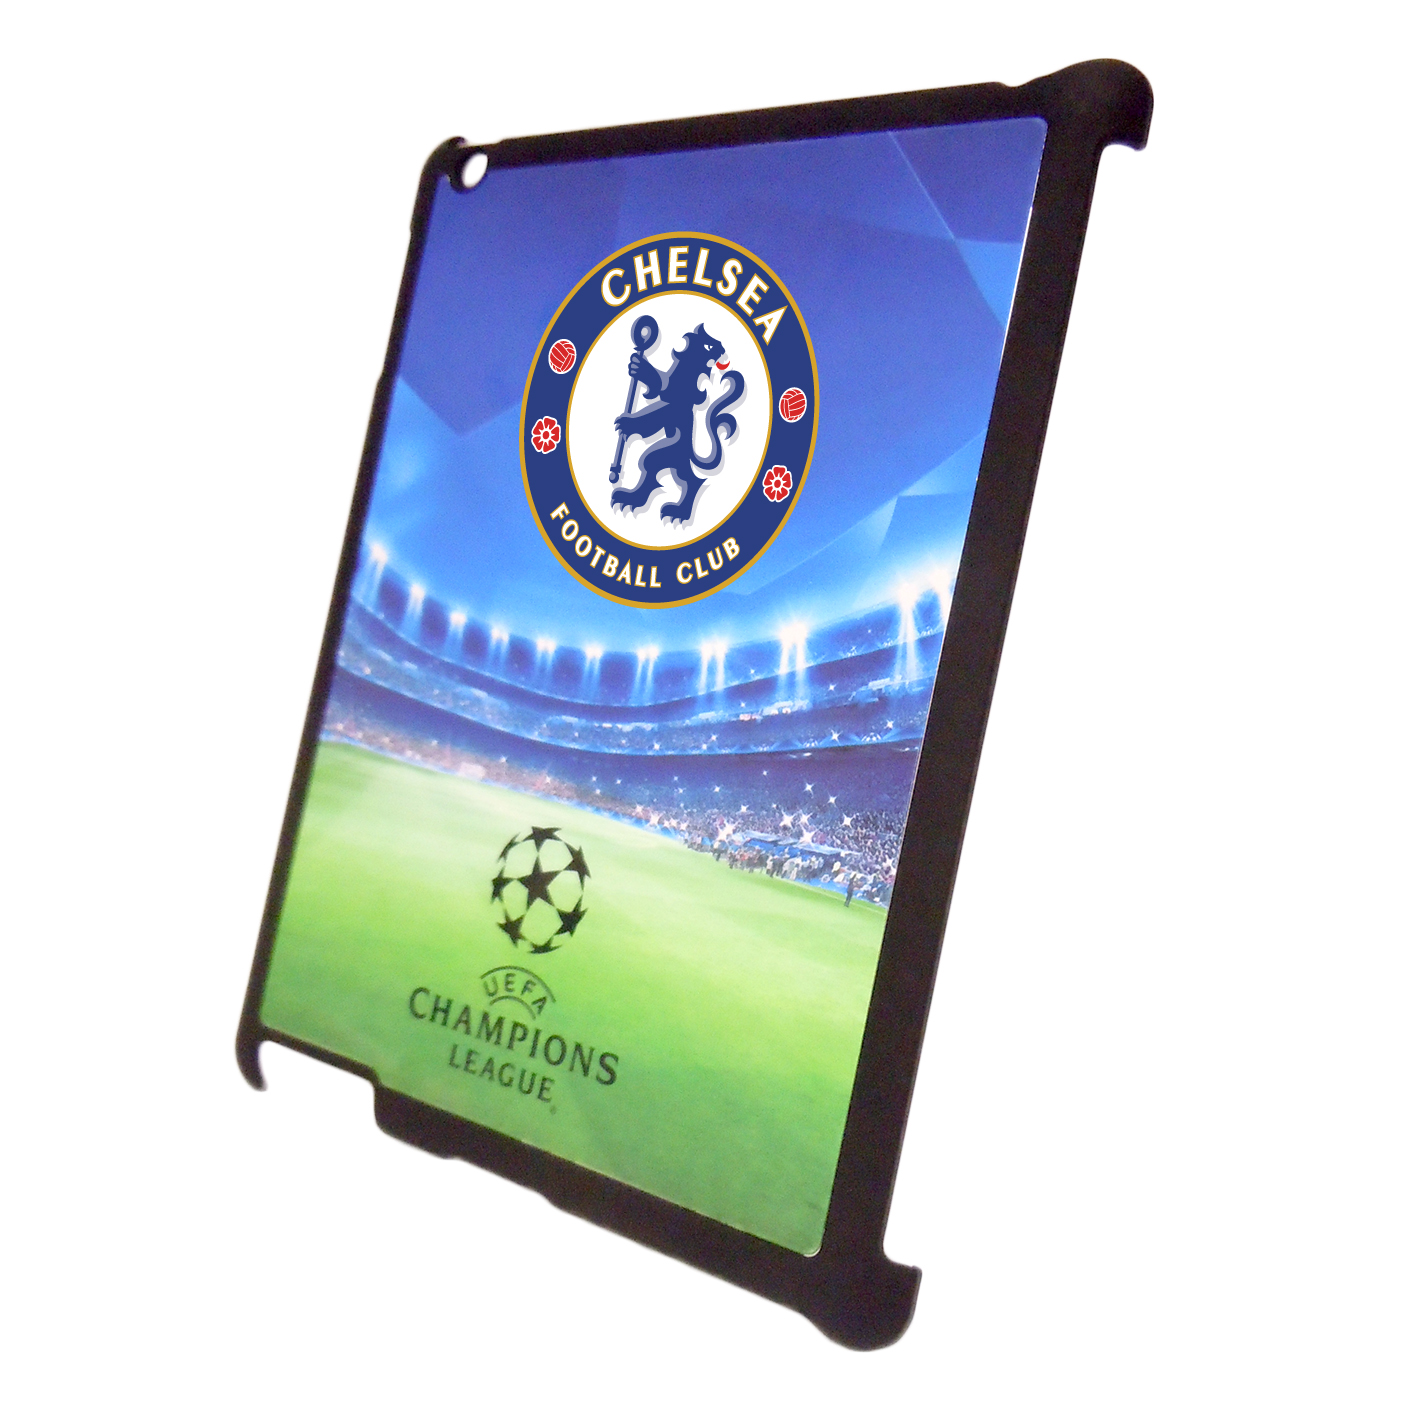 Chelsea UEFA Champions League IPad 2 Tablet Cover